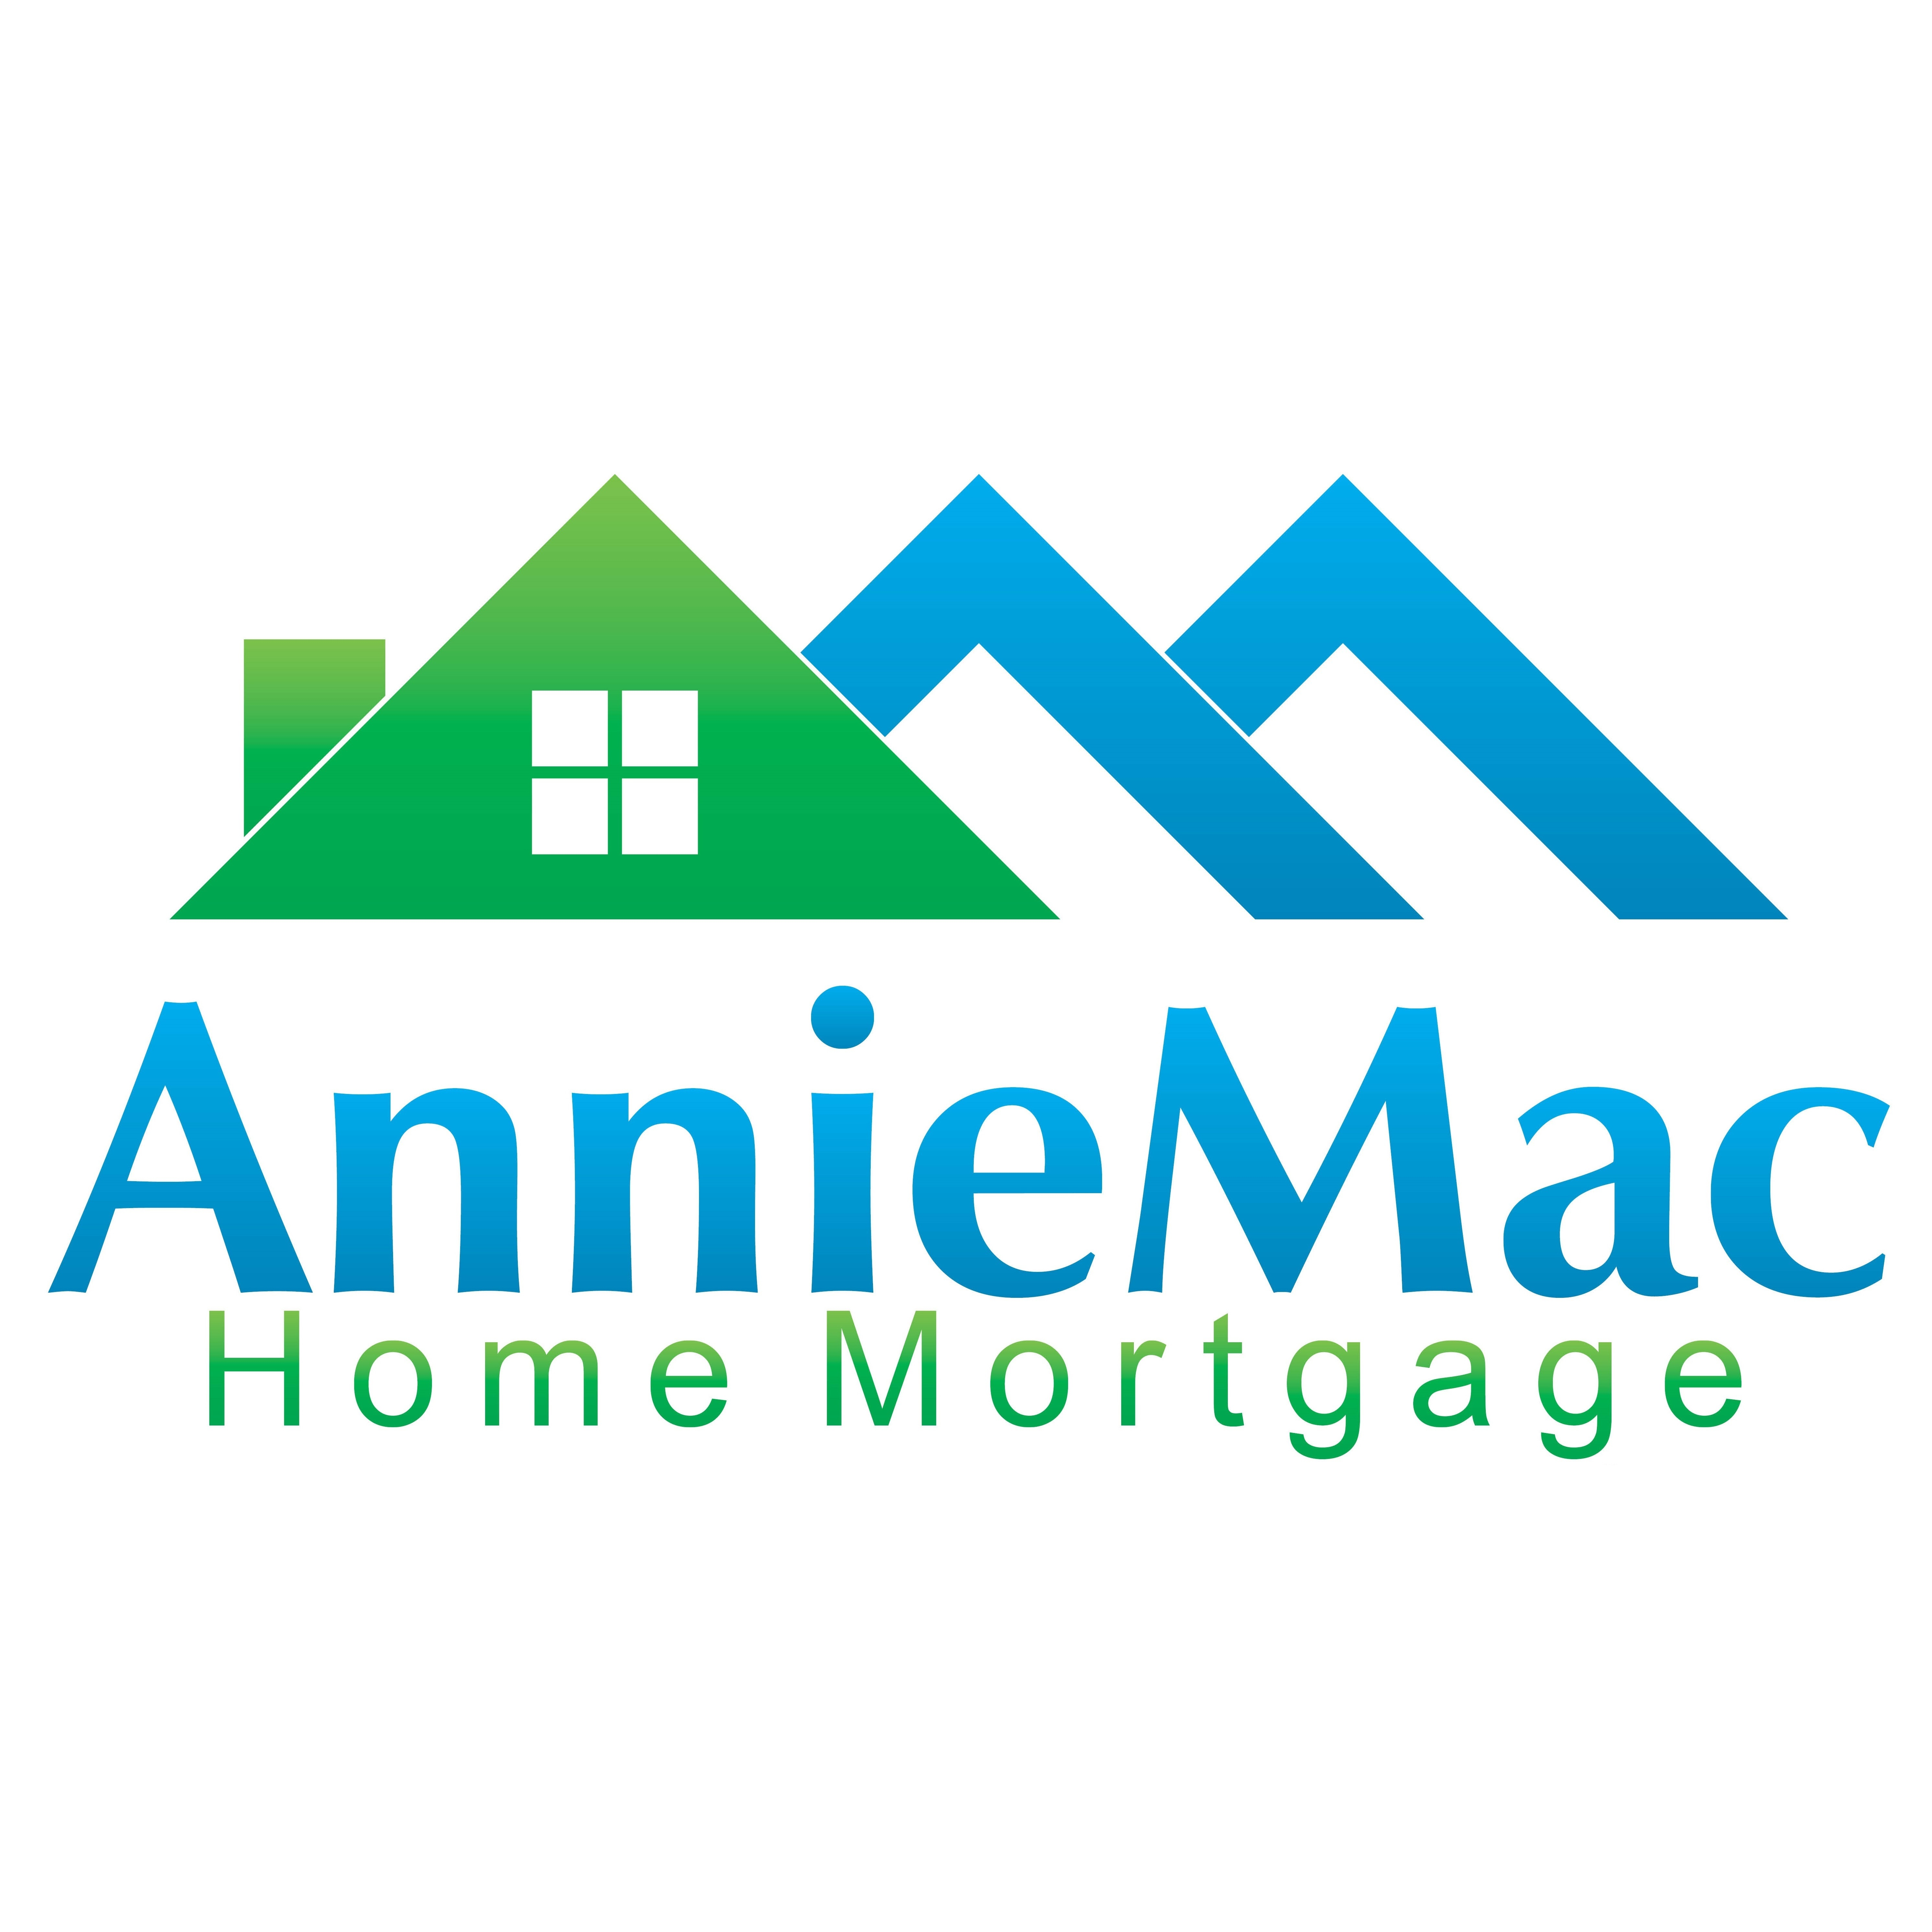 Loan Companies Near Me >> AnnieMac Home Mortgage Coupons near me in Greenville | 8coupons